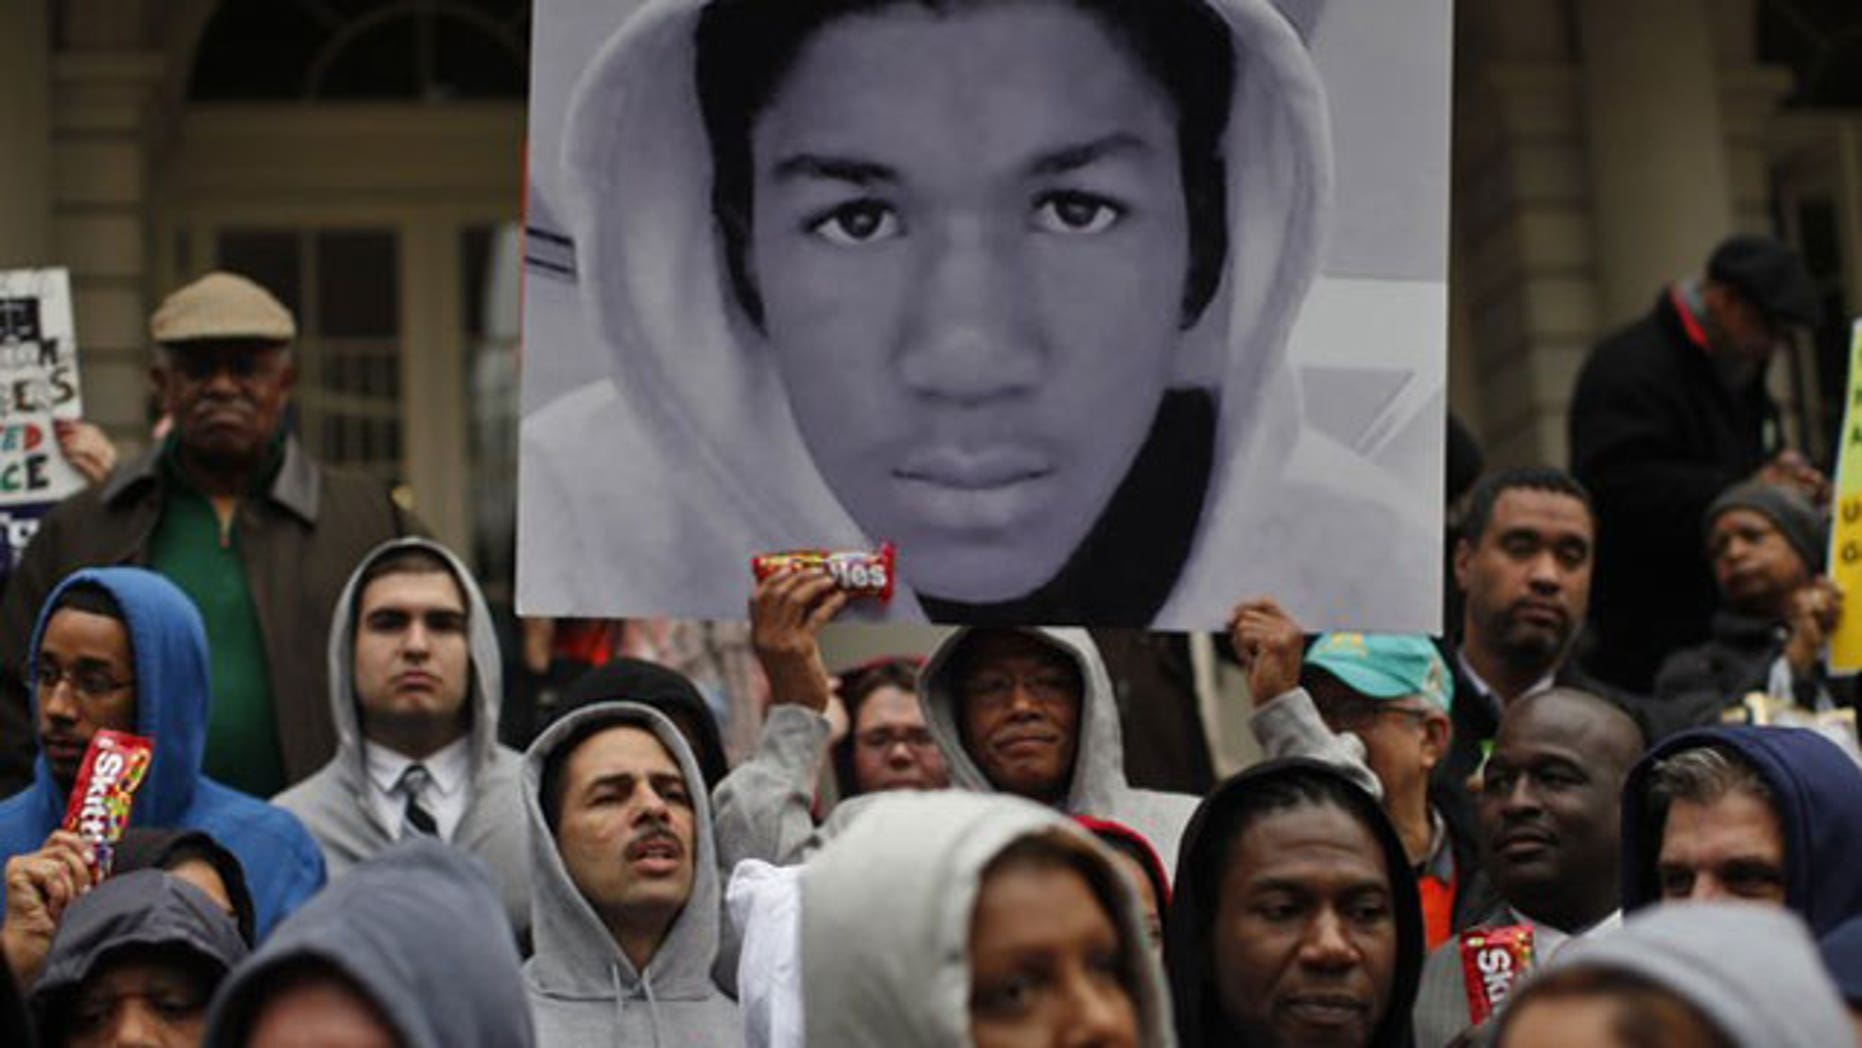 """March 28, 2012: Members of the New York City Council wear """"hoodie"""" sweatshirts as they stand together on the steps of City Hall in New York."""